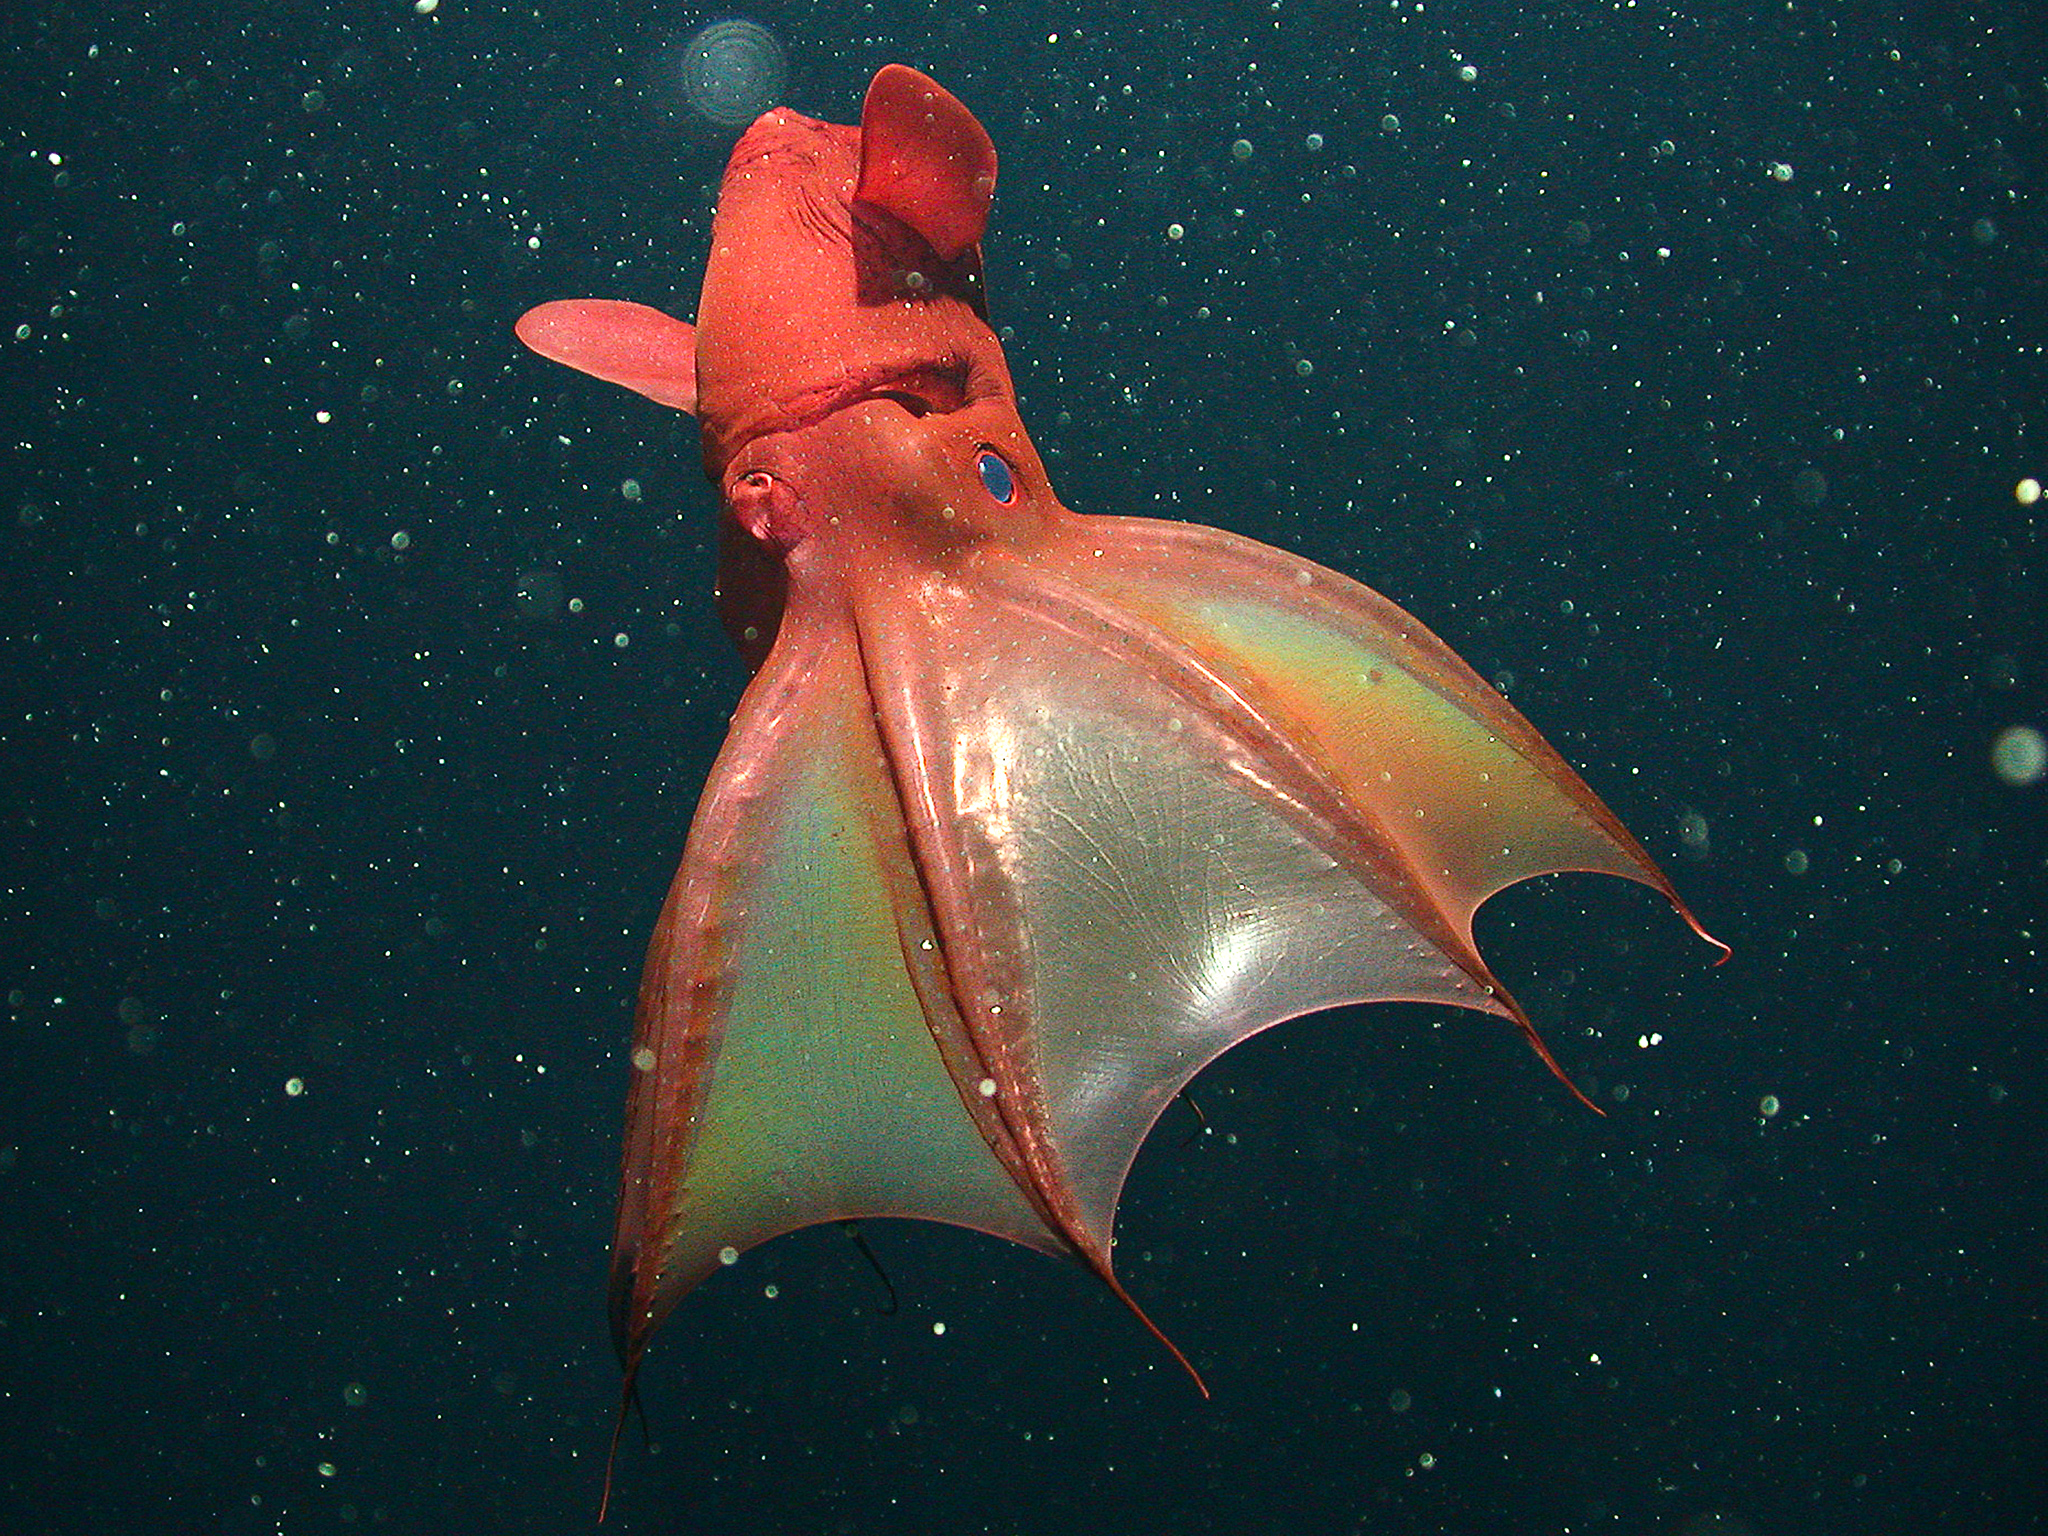 http://www.mbari.org/news/news_releases/2012/vampfood/hires/vampfood-hrimages.html